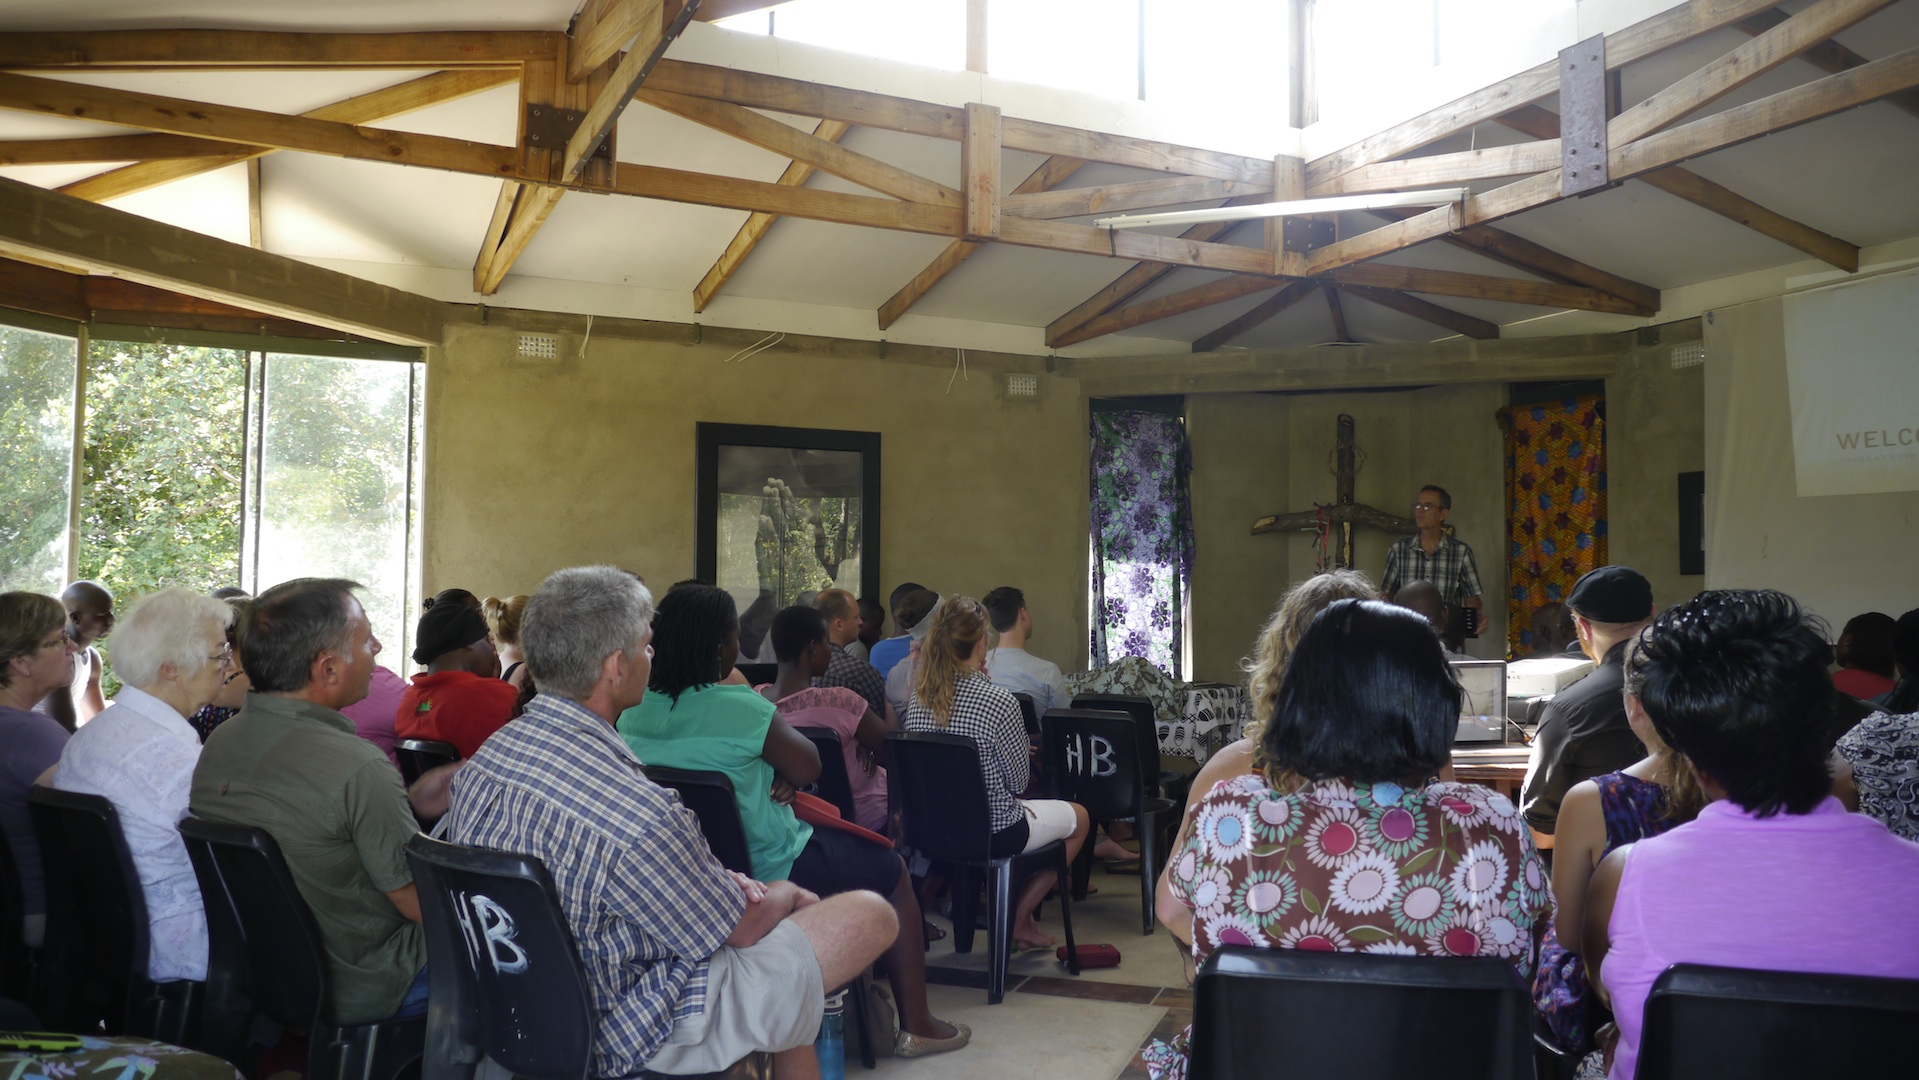 The Hands at Work community in South Africa being introduced to the 2014 WatchWord.